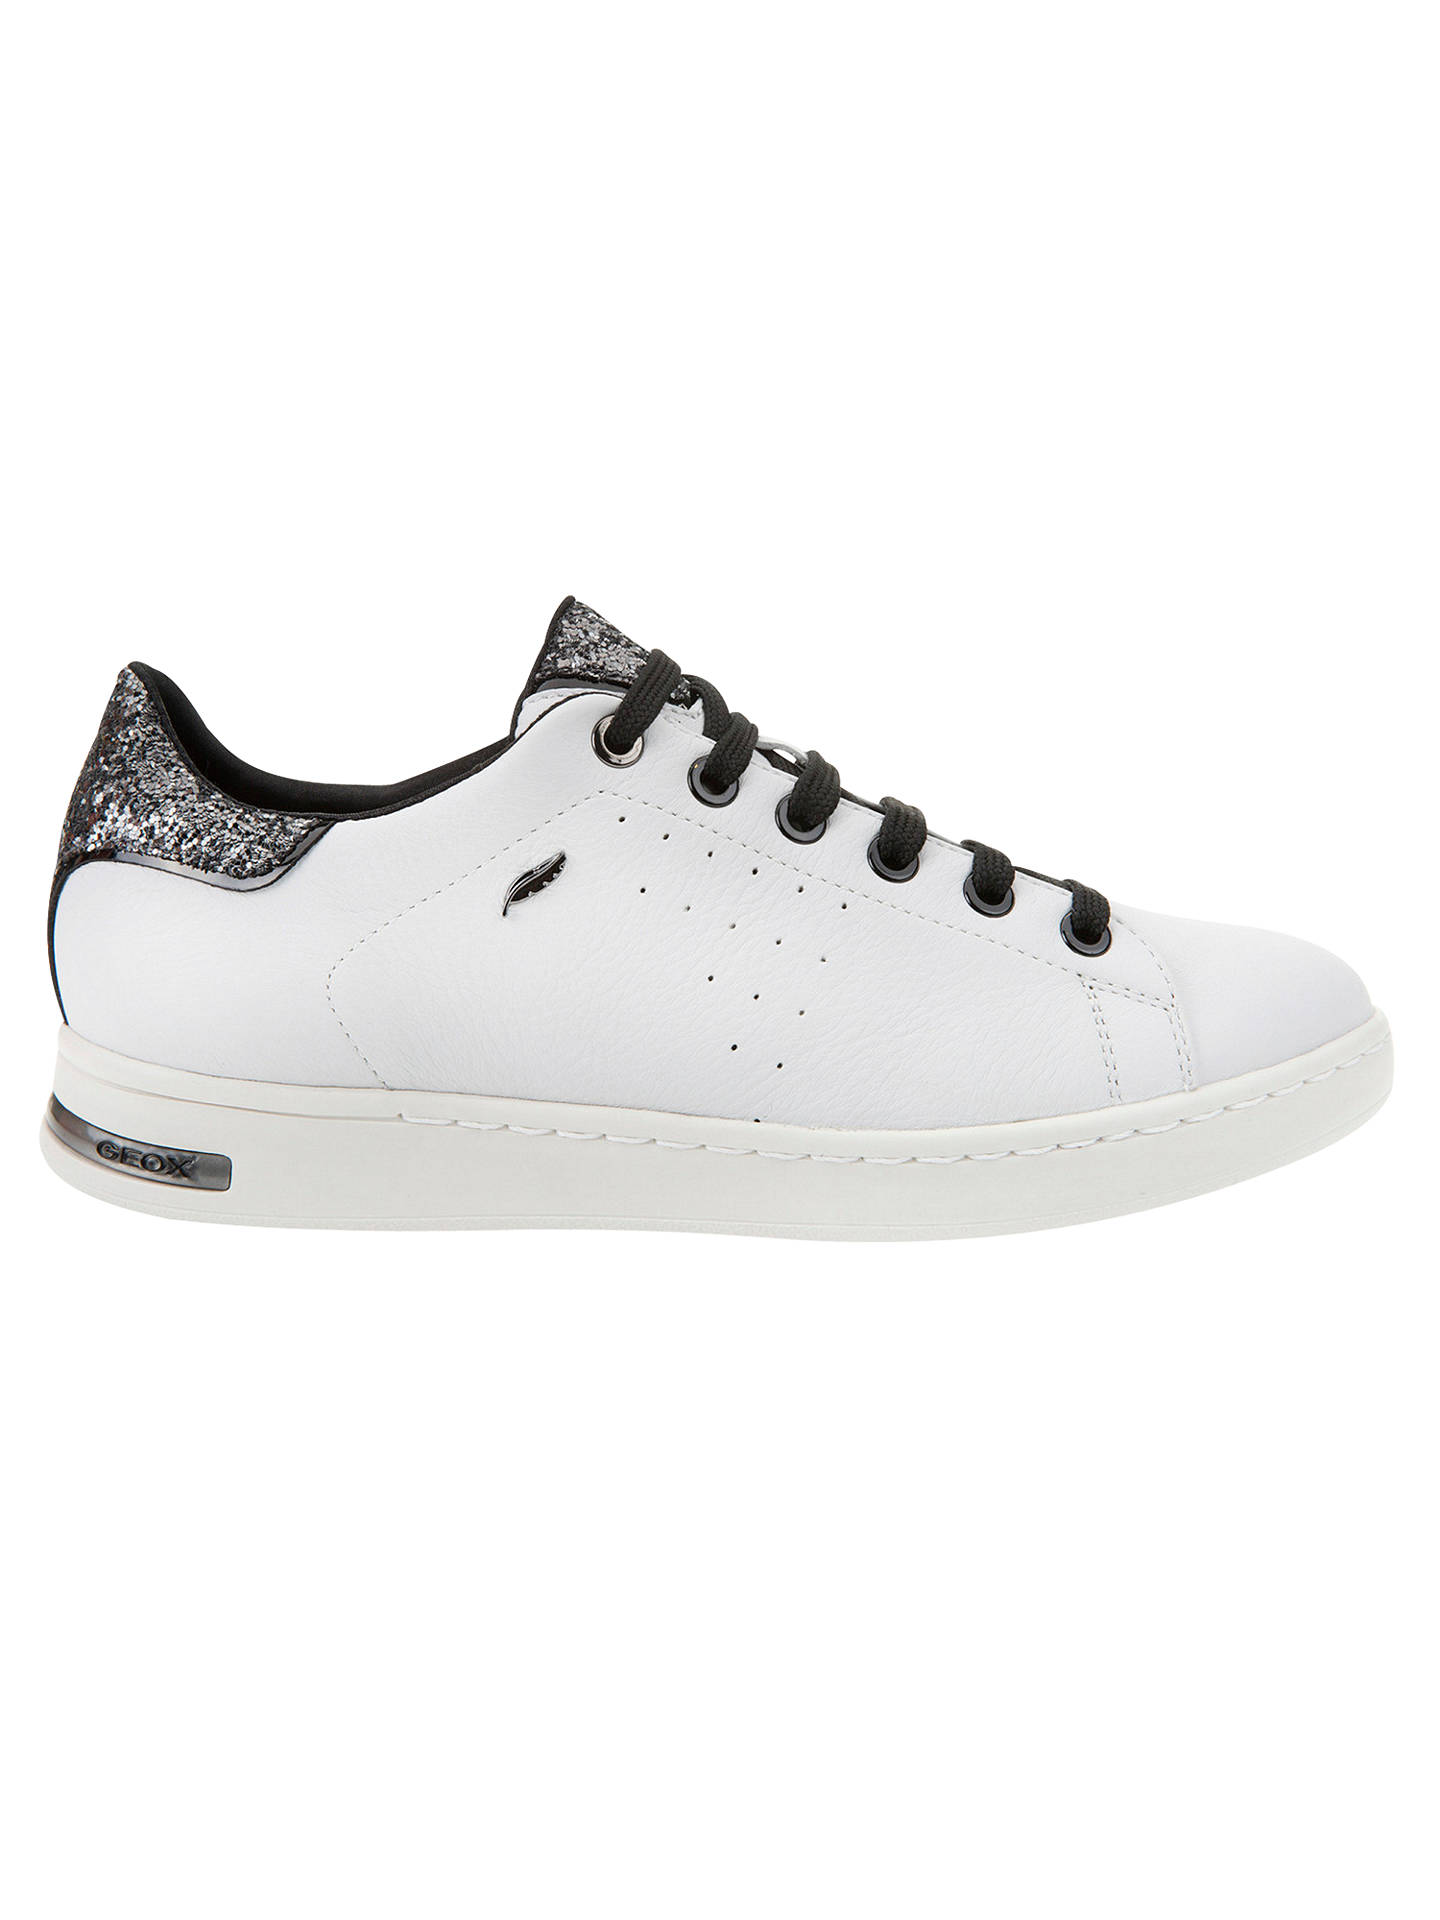 80f34225c8 Buy Geox Jaysen Glitter Lace Up Trainers, White/Silver, 3 Online at  johnlewis ...